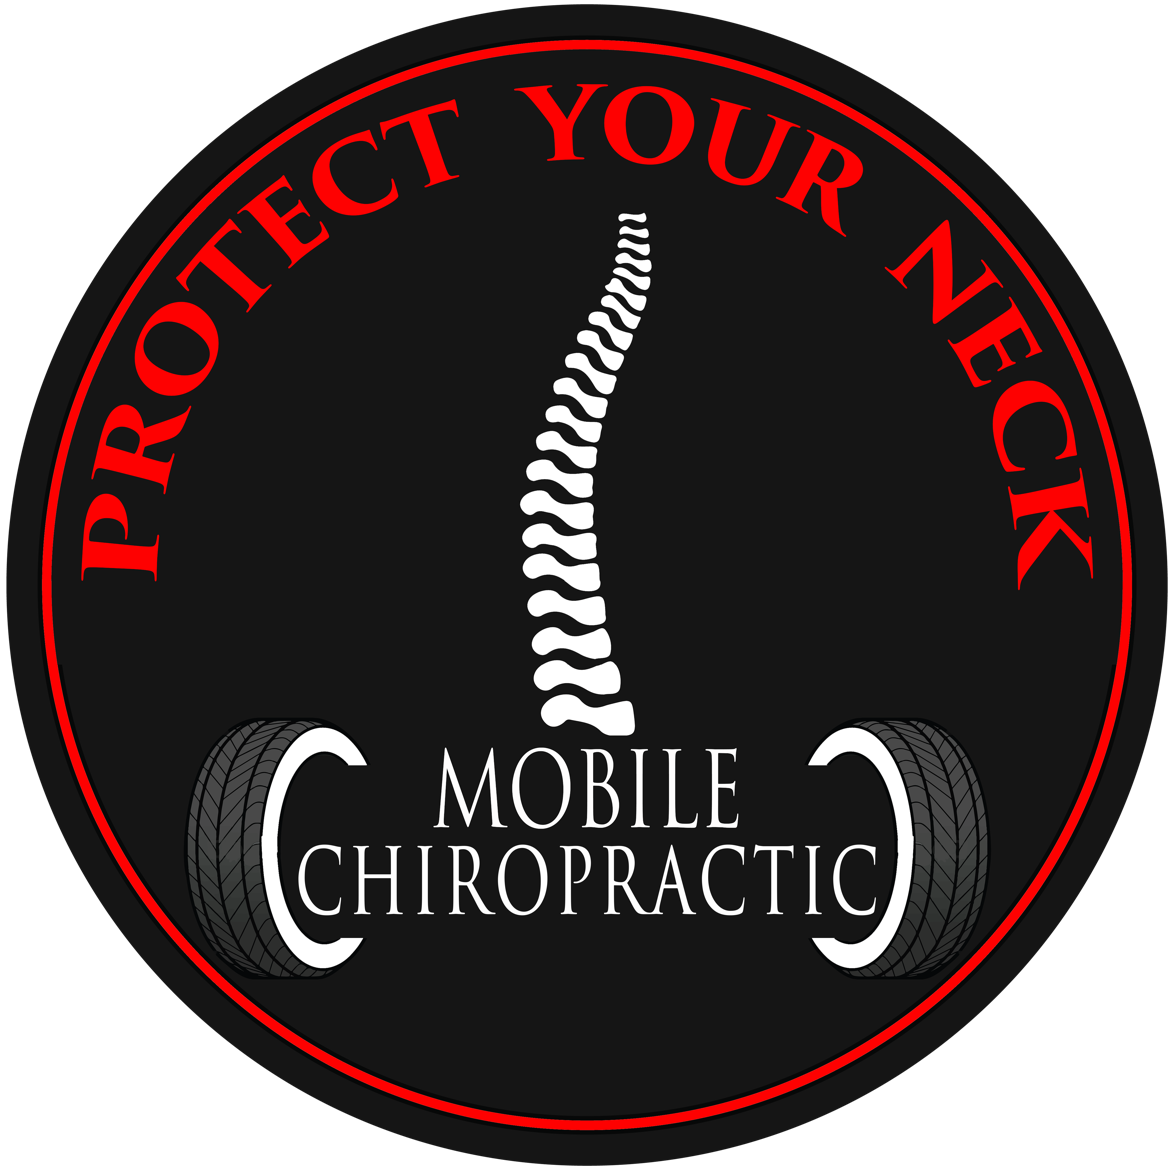 Protect Your Neck Mobile Chiropractic, PLLC